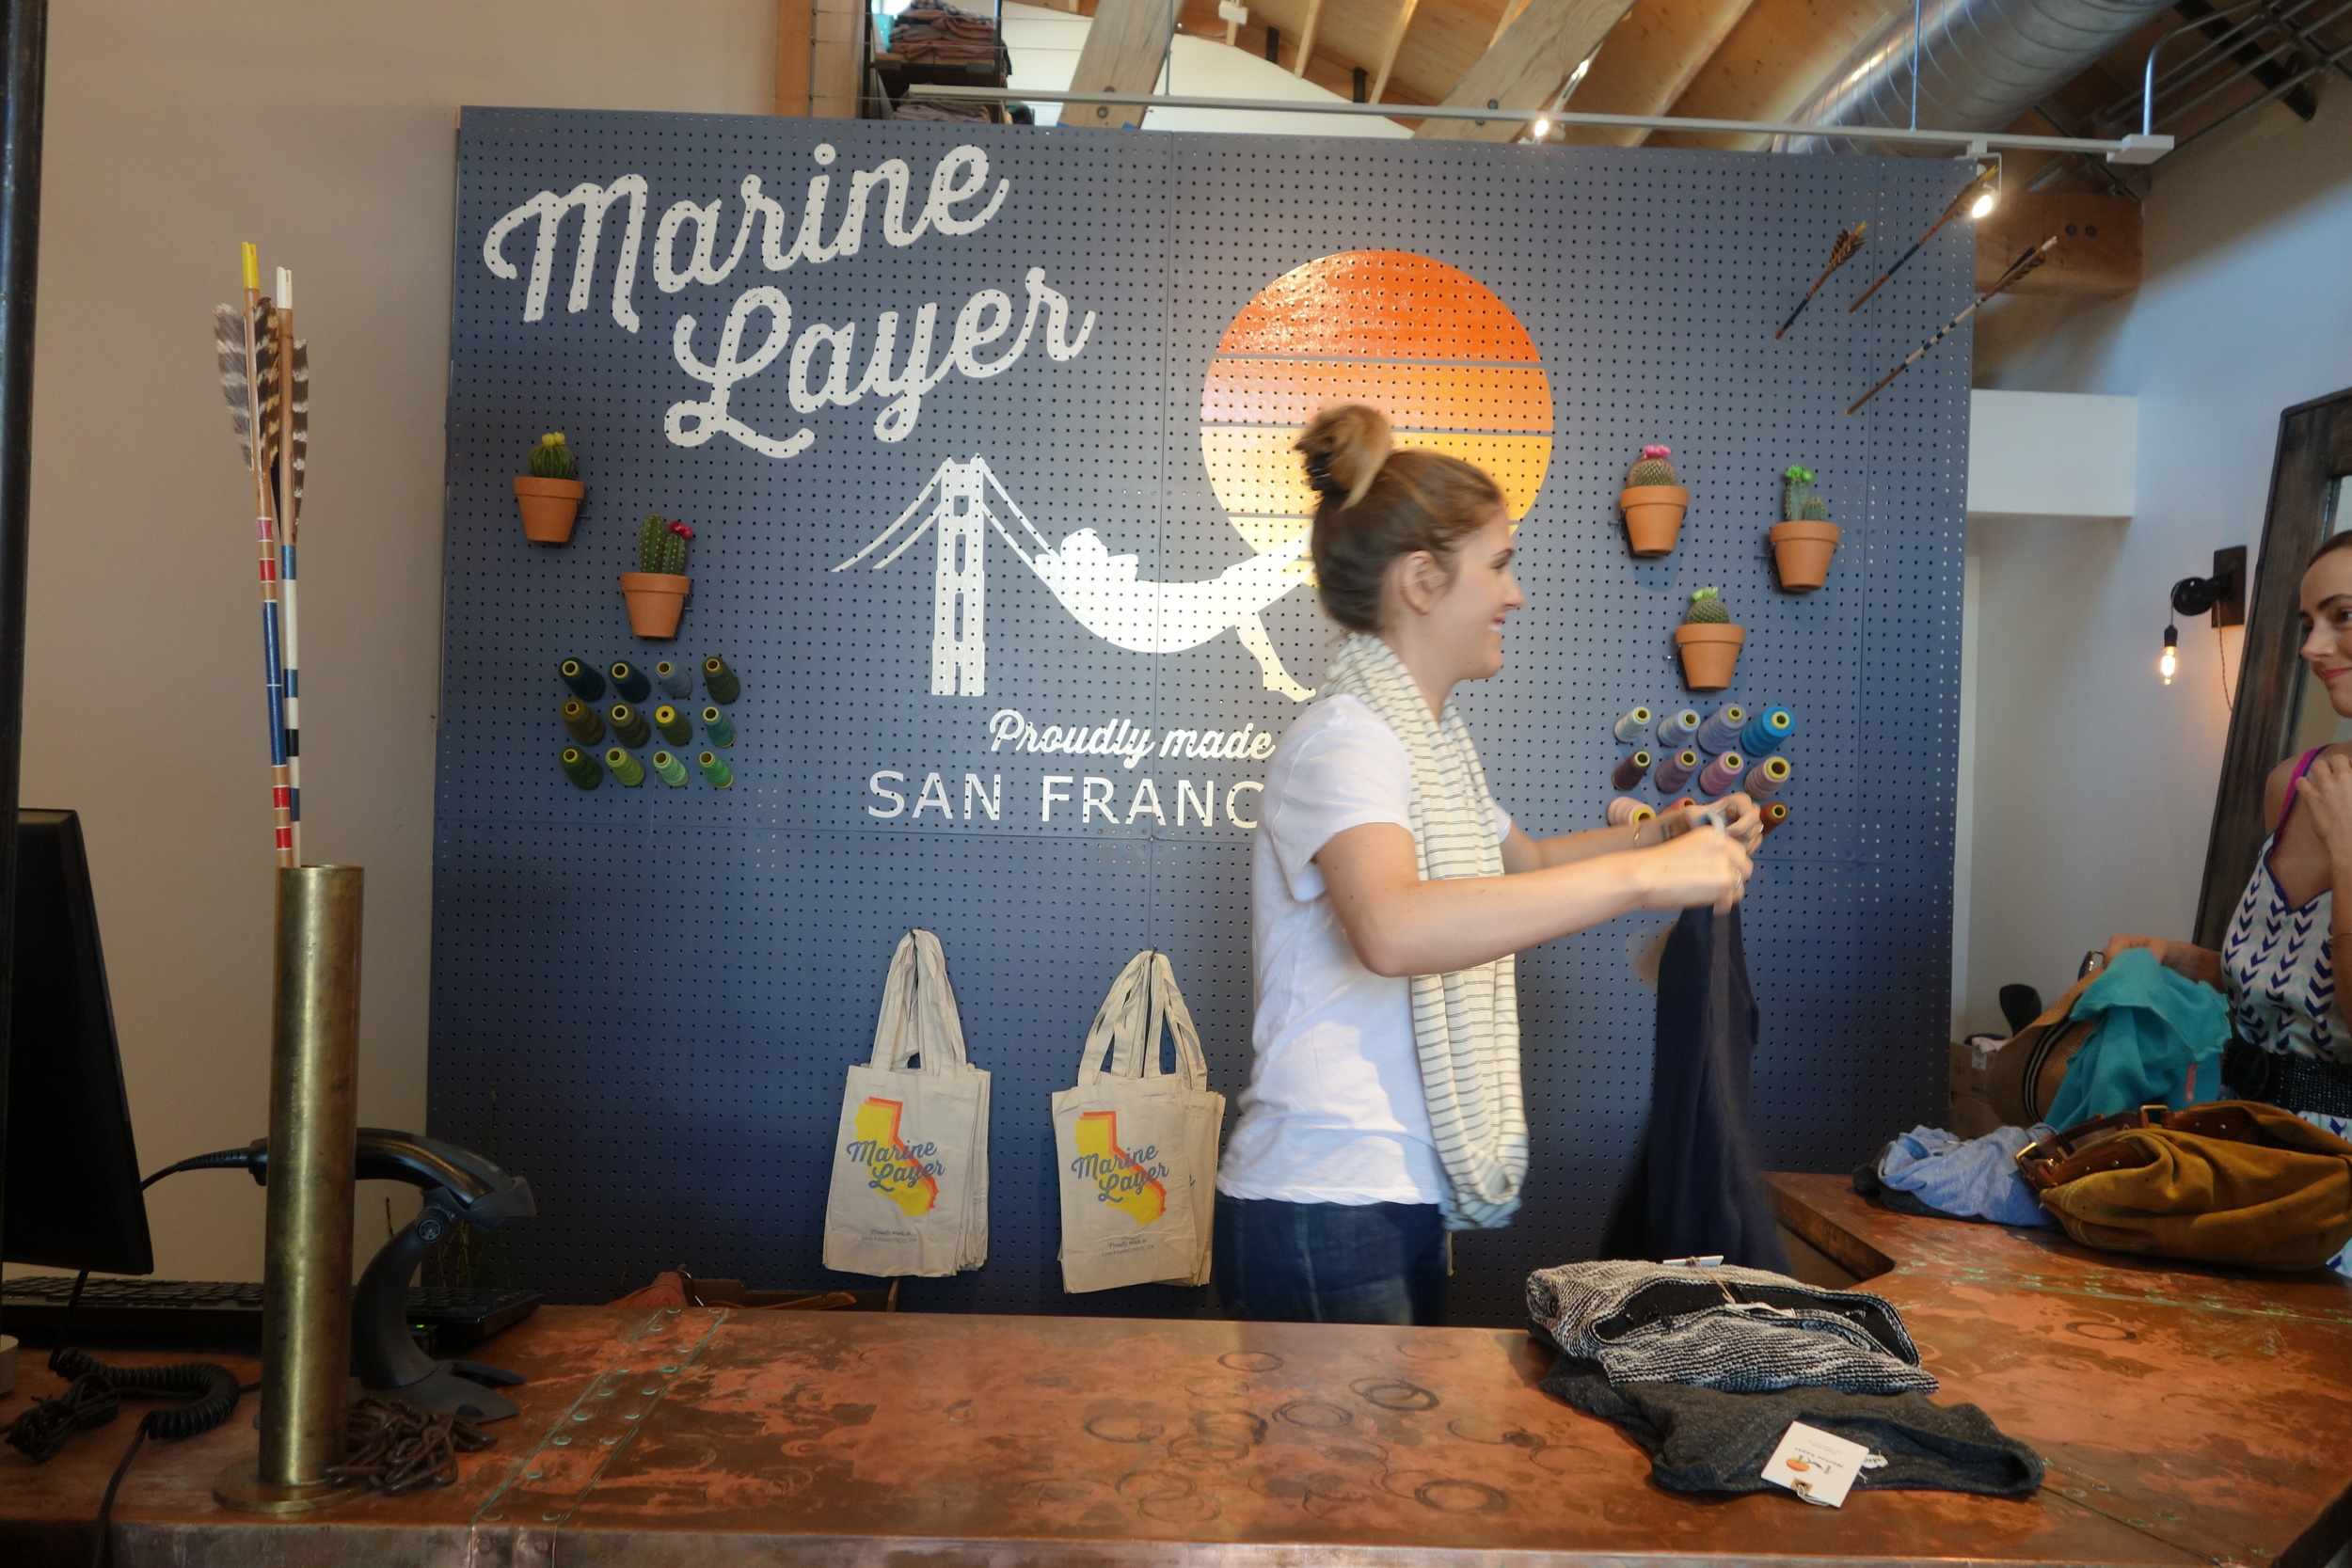 Marine Layer, a clothing boutique on Abbot Kinney, opens just in time for the festival. (Photo by Nicole Reed)